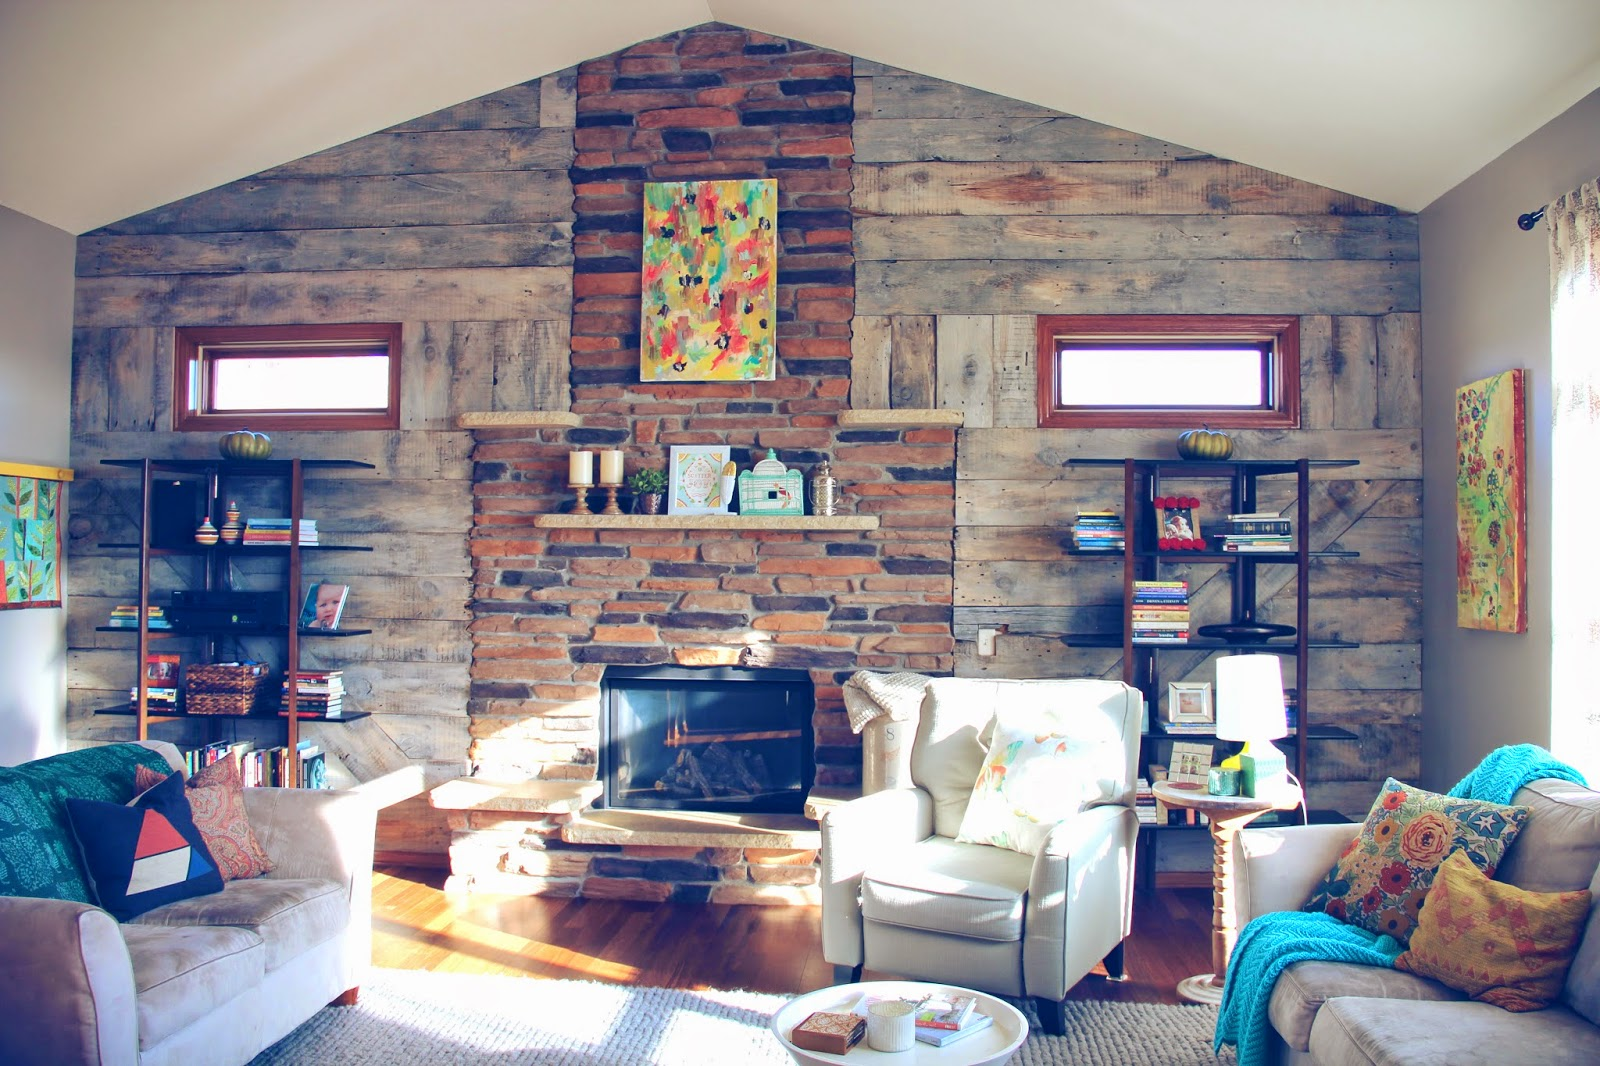 I Thought It Would Be Fun To Show You More Details Shots Of Our Living Room Today We Are Loving The New Barnwood Wall And Freshly Painted Gray Walls